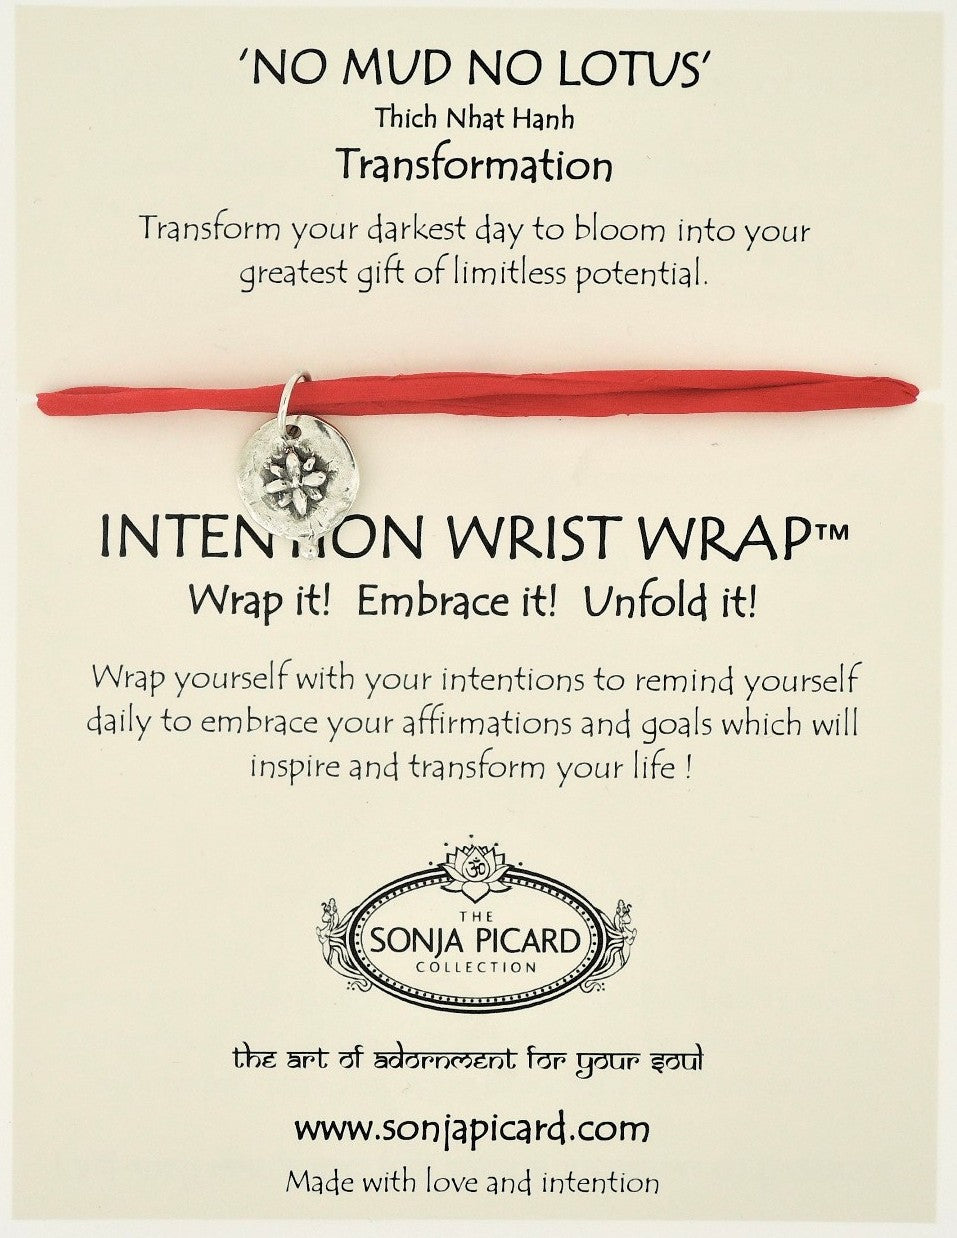 No Mud No Lotus Wrist Wrap - Transformation